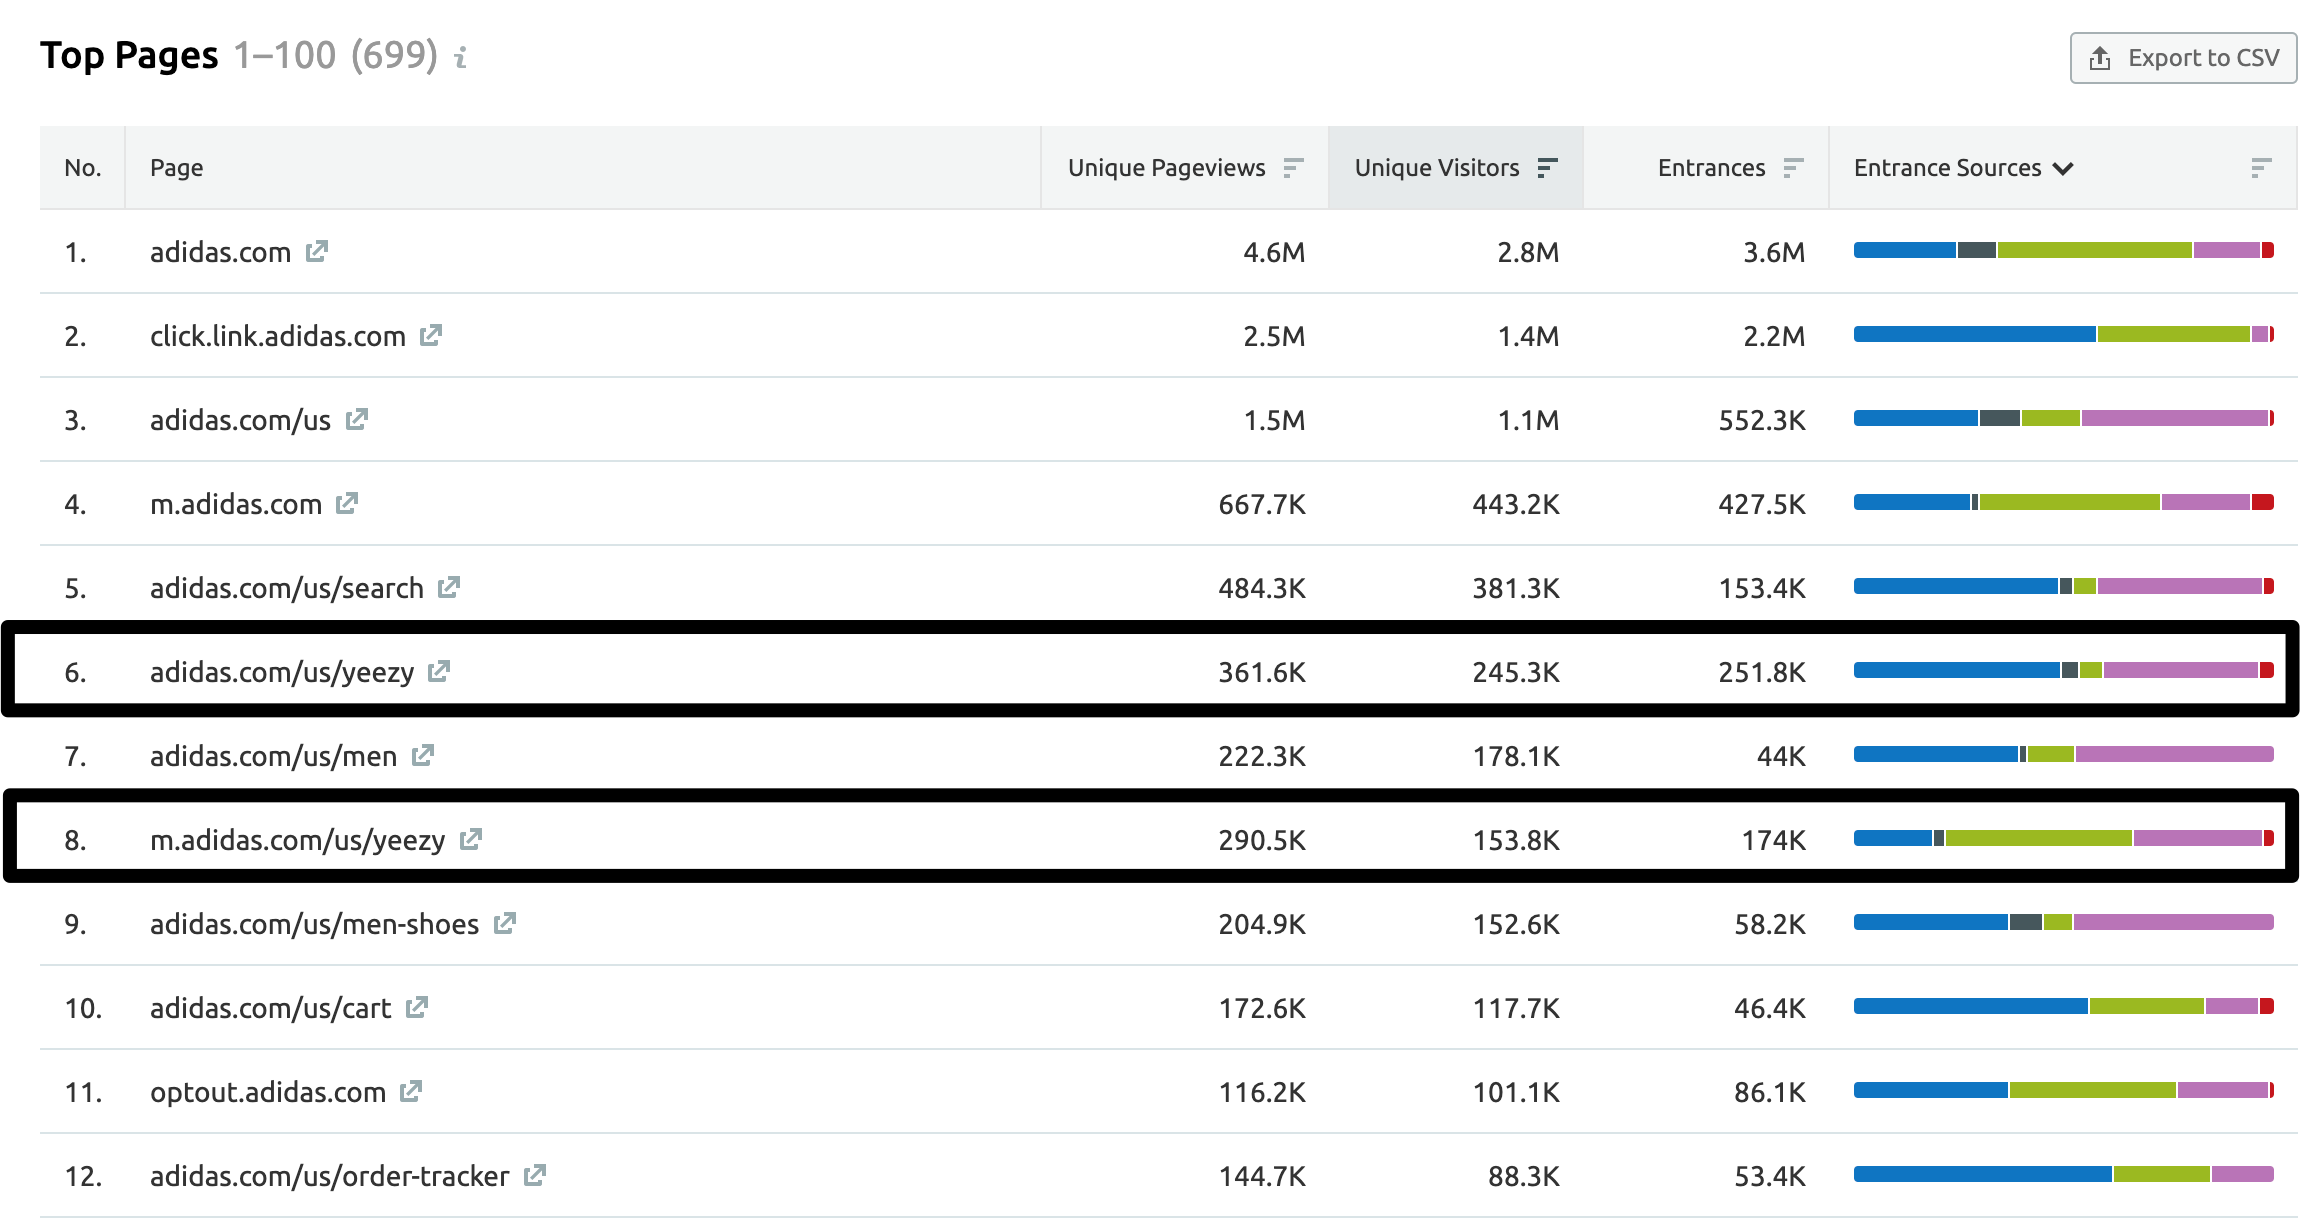 Traffic Analytics Top Pages Report image 2